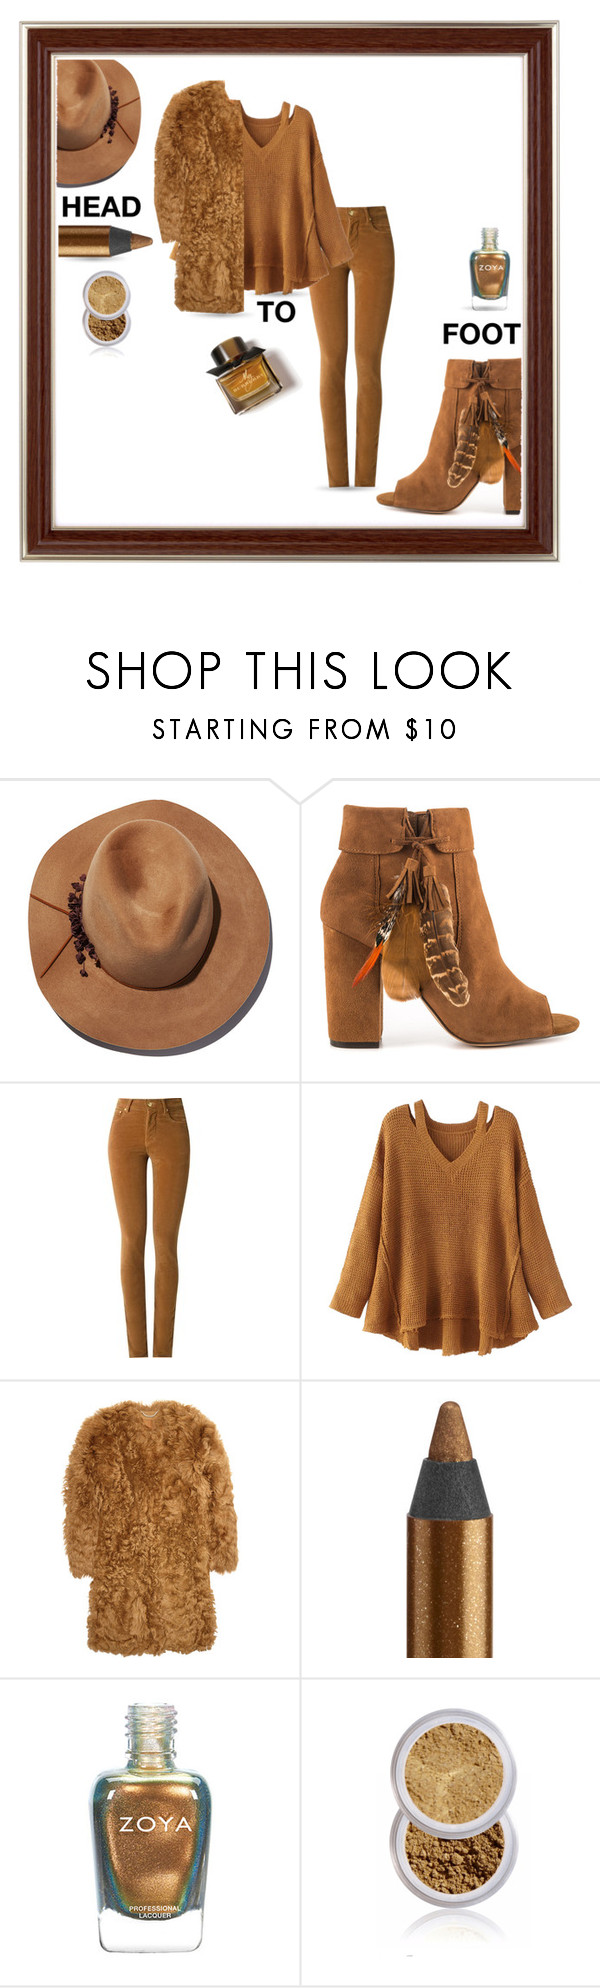 """""""Head To Foot"""" by queenofsienna ❤ liked on Polyvore featuring Eugenia Kim, Jessica Simpson, Amapô, WithChic, Burberry and Urban Decay"""